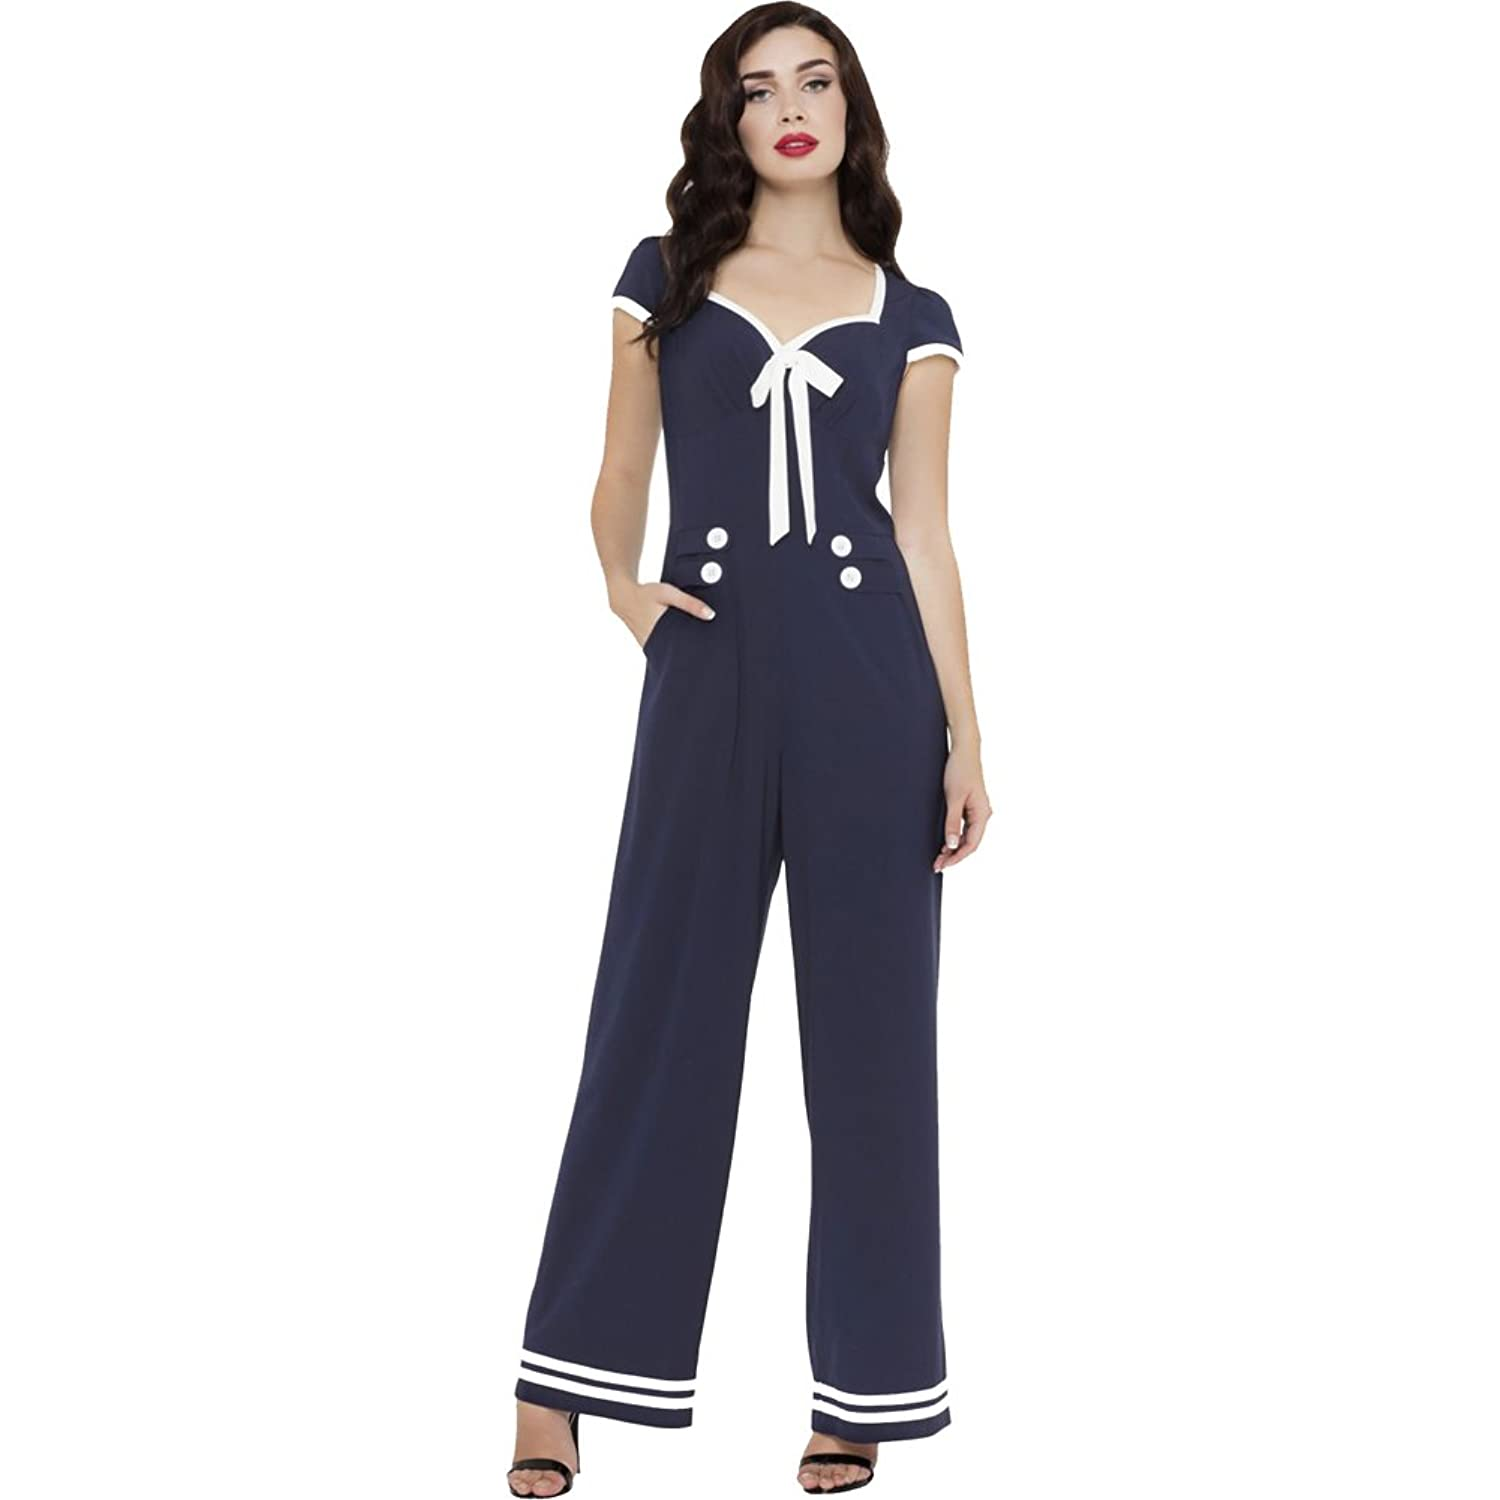 1930s Women's Pants and Beach Pajamas Womens Voodoo Vixen JOLENE Nautical Stripped Wide Leg Jumpsuit Navy $73.95 AT vintagedancer.com